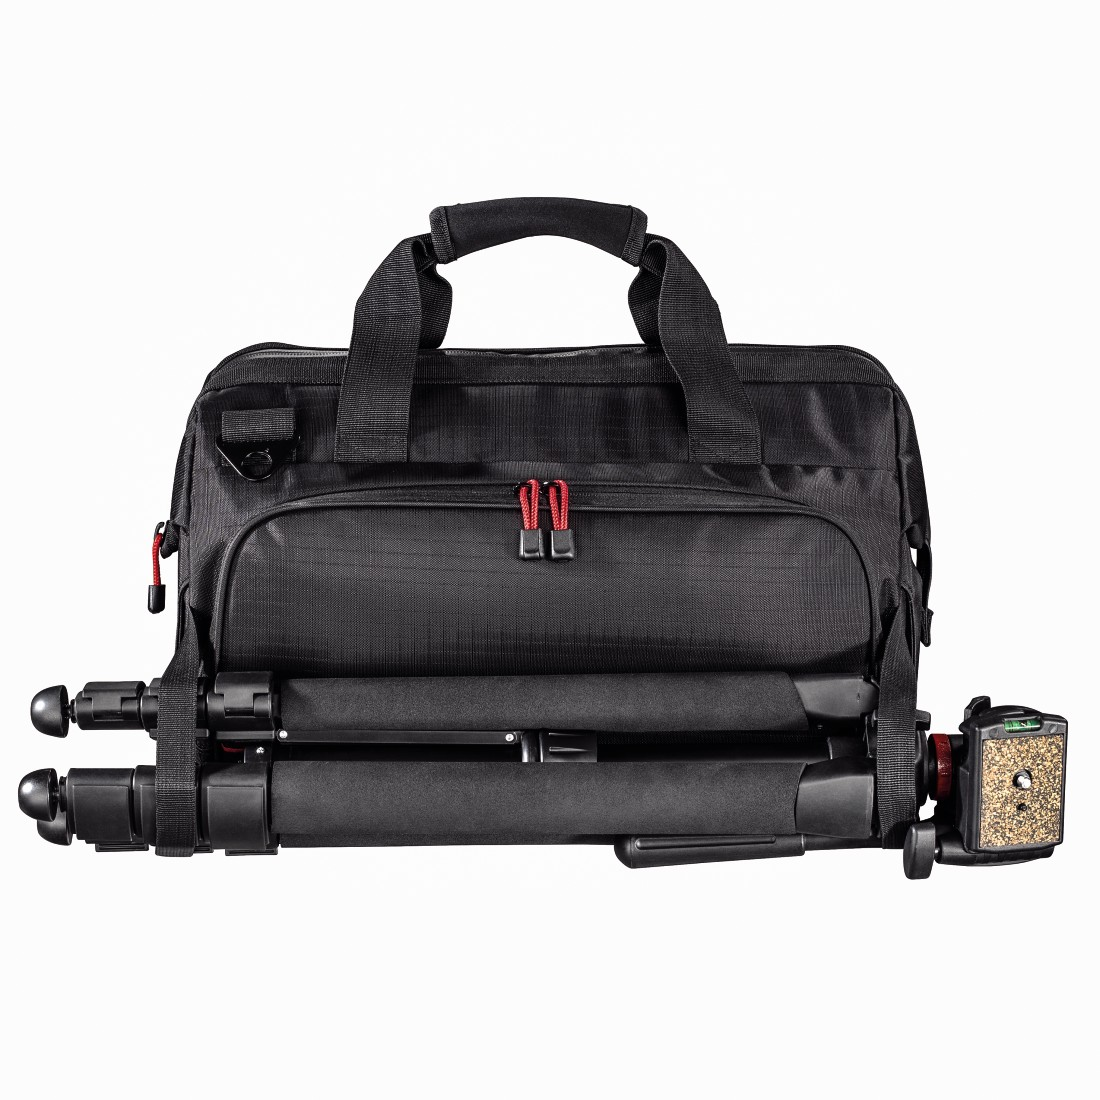 awx2 High-Res Appliance 2 - Hama, Multitrans Camera Bag, 200, black